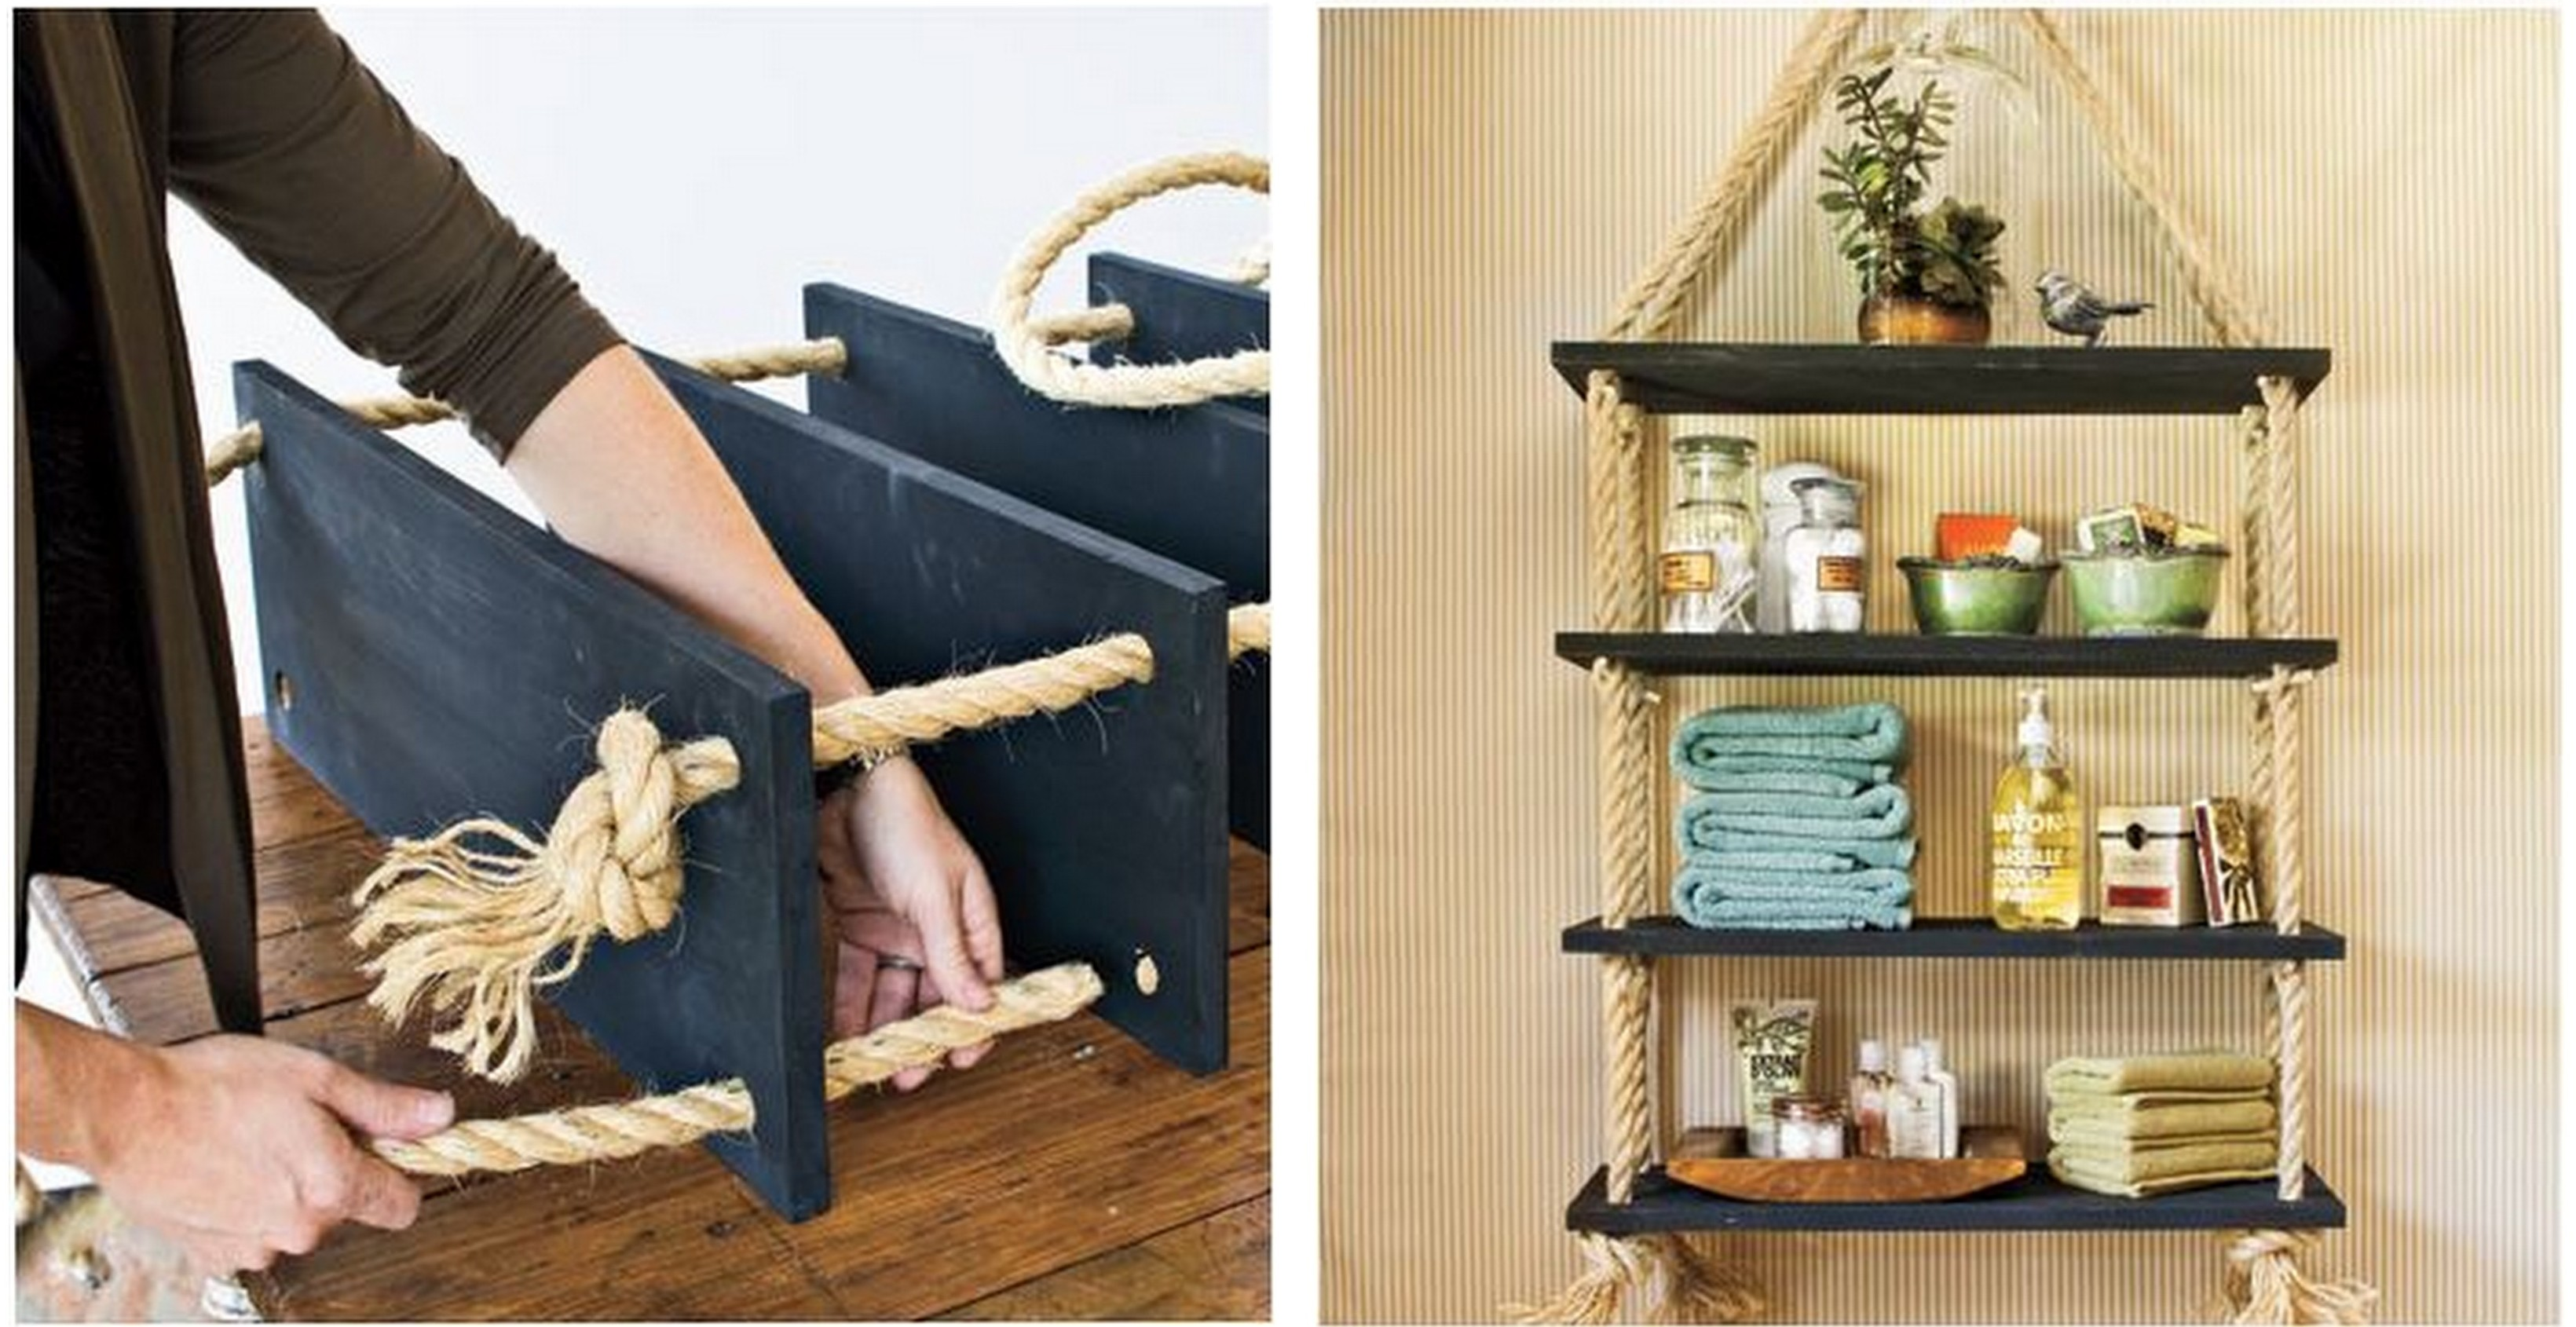 DIY Ideas: The Best DIY Shelves DIY Ideas: The Best DIY Shelves rope shelf 2